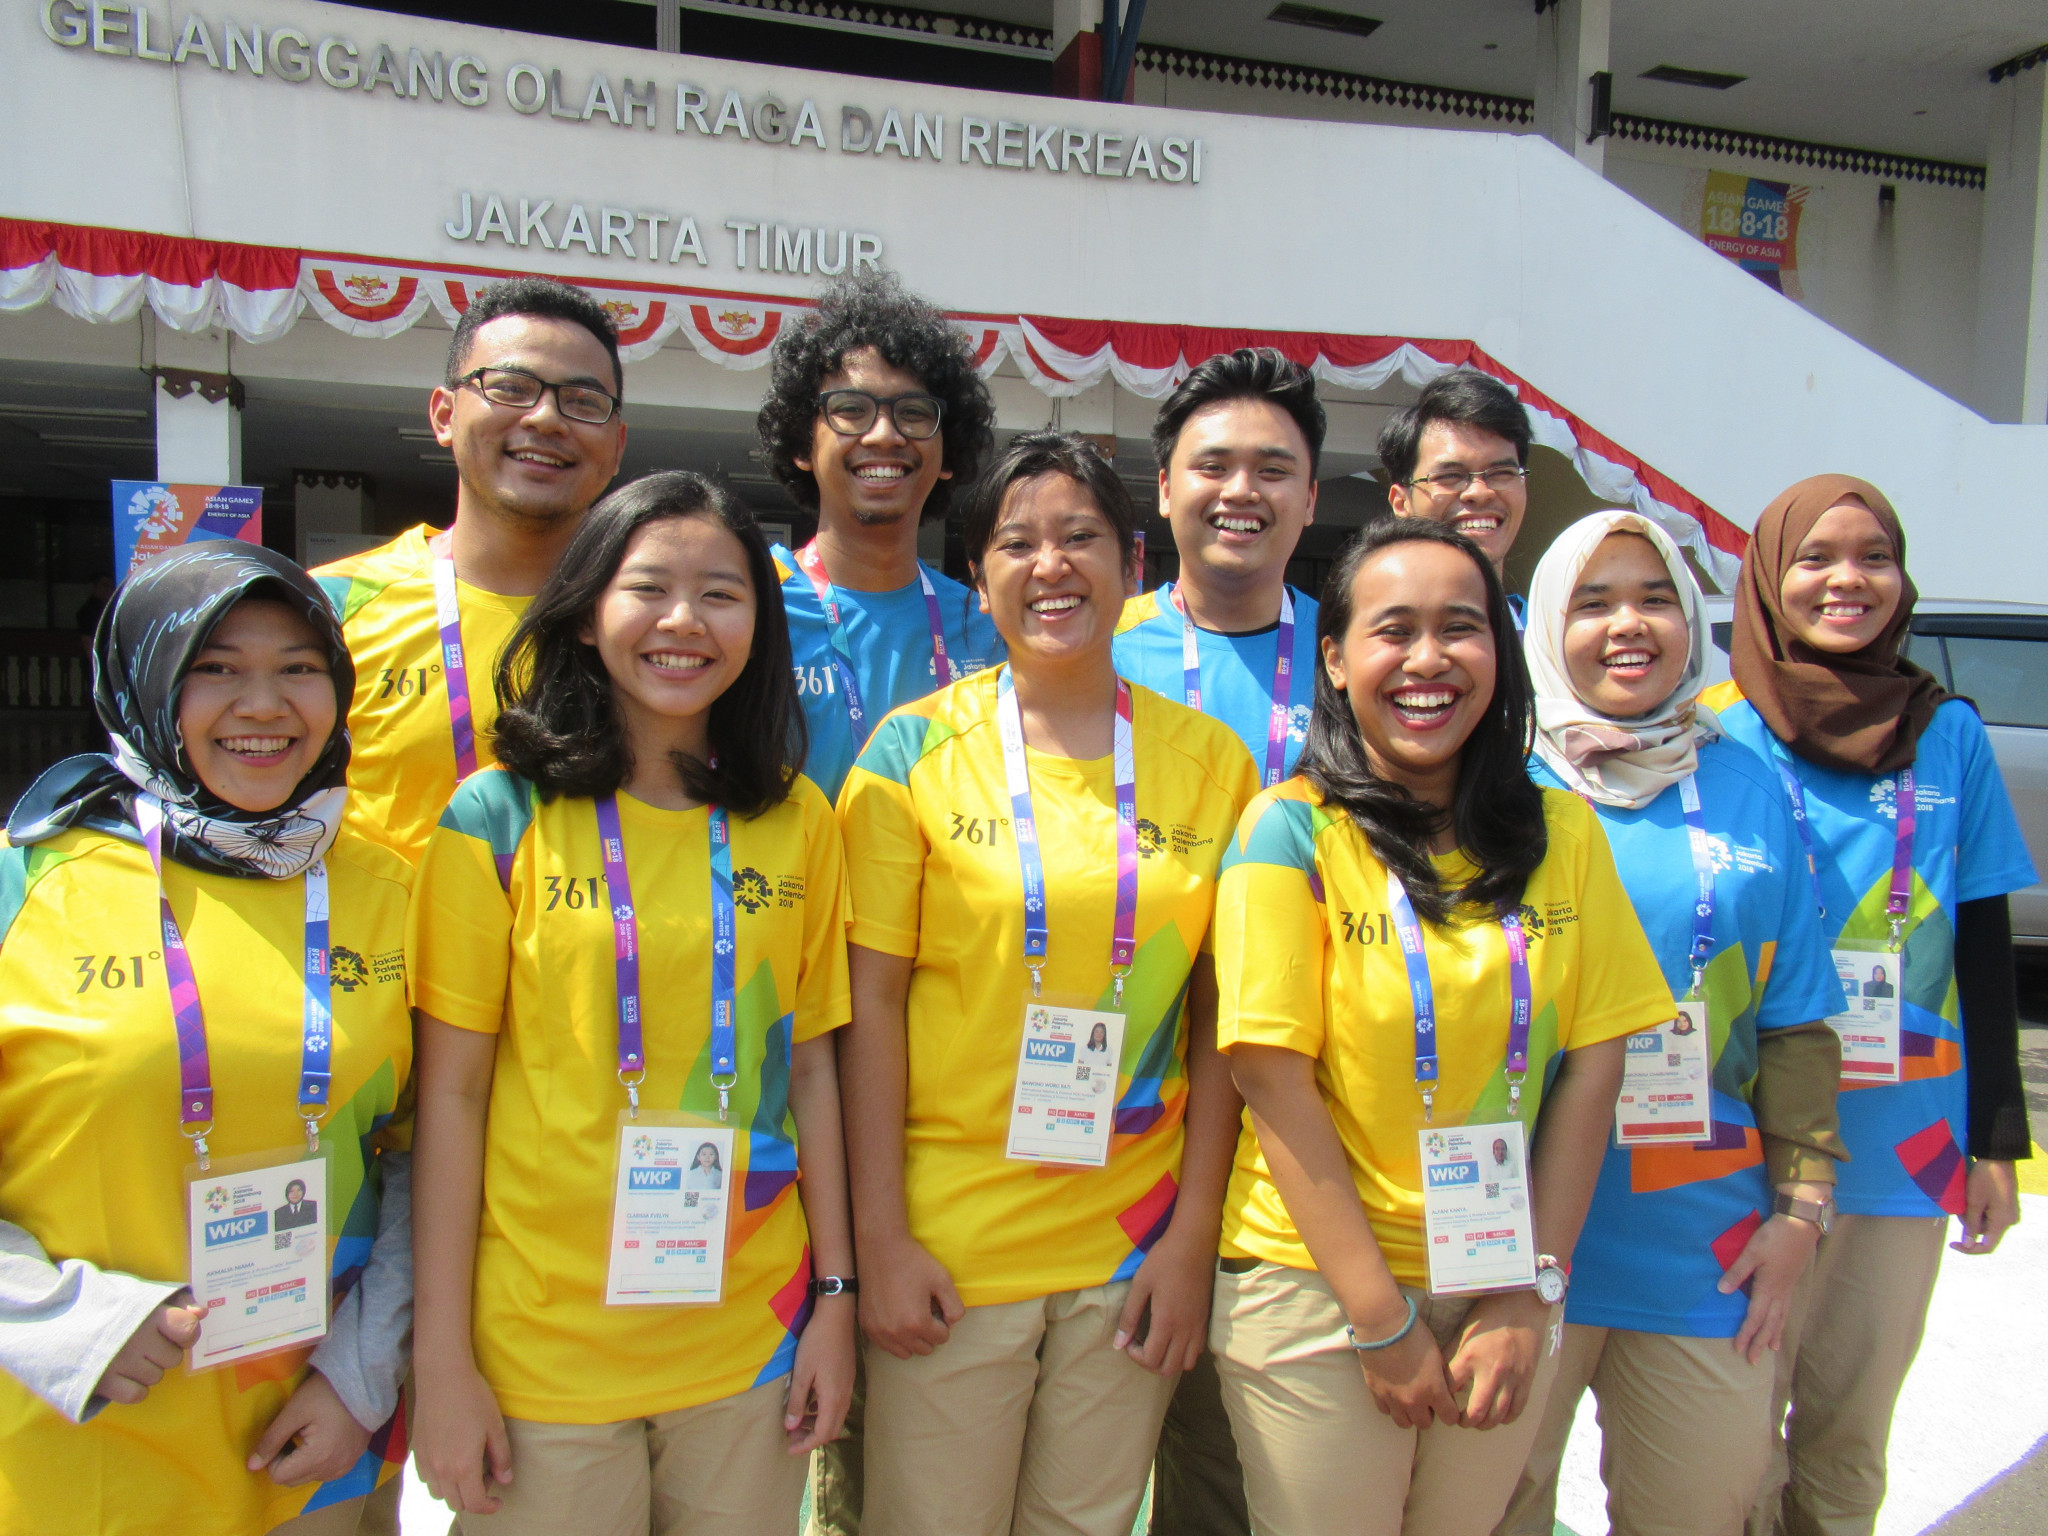 Volunteers For The Asian Games In Jakarta And Palembang Have Begun To Collect Their Uniforms And